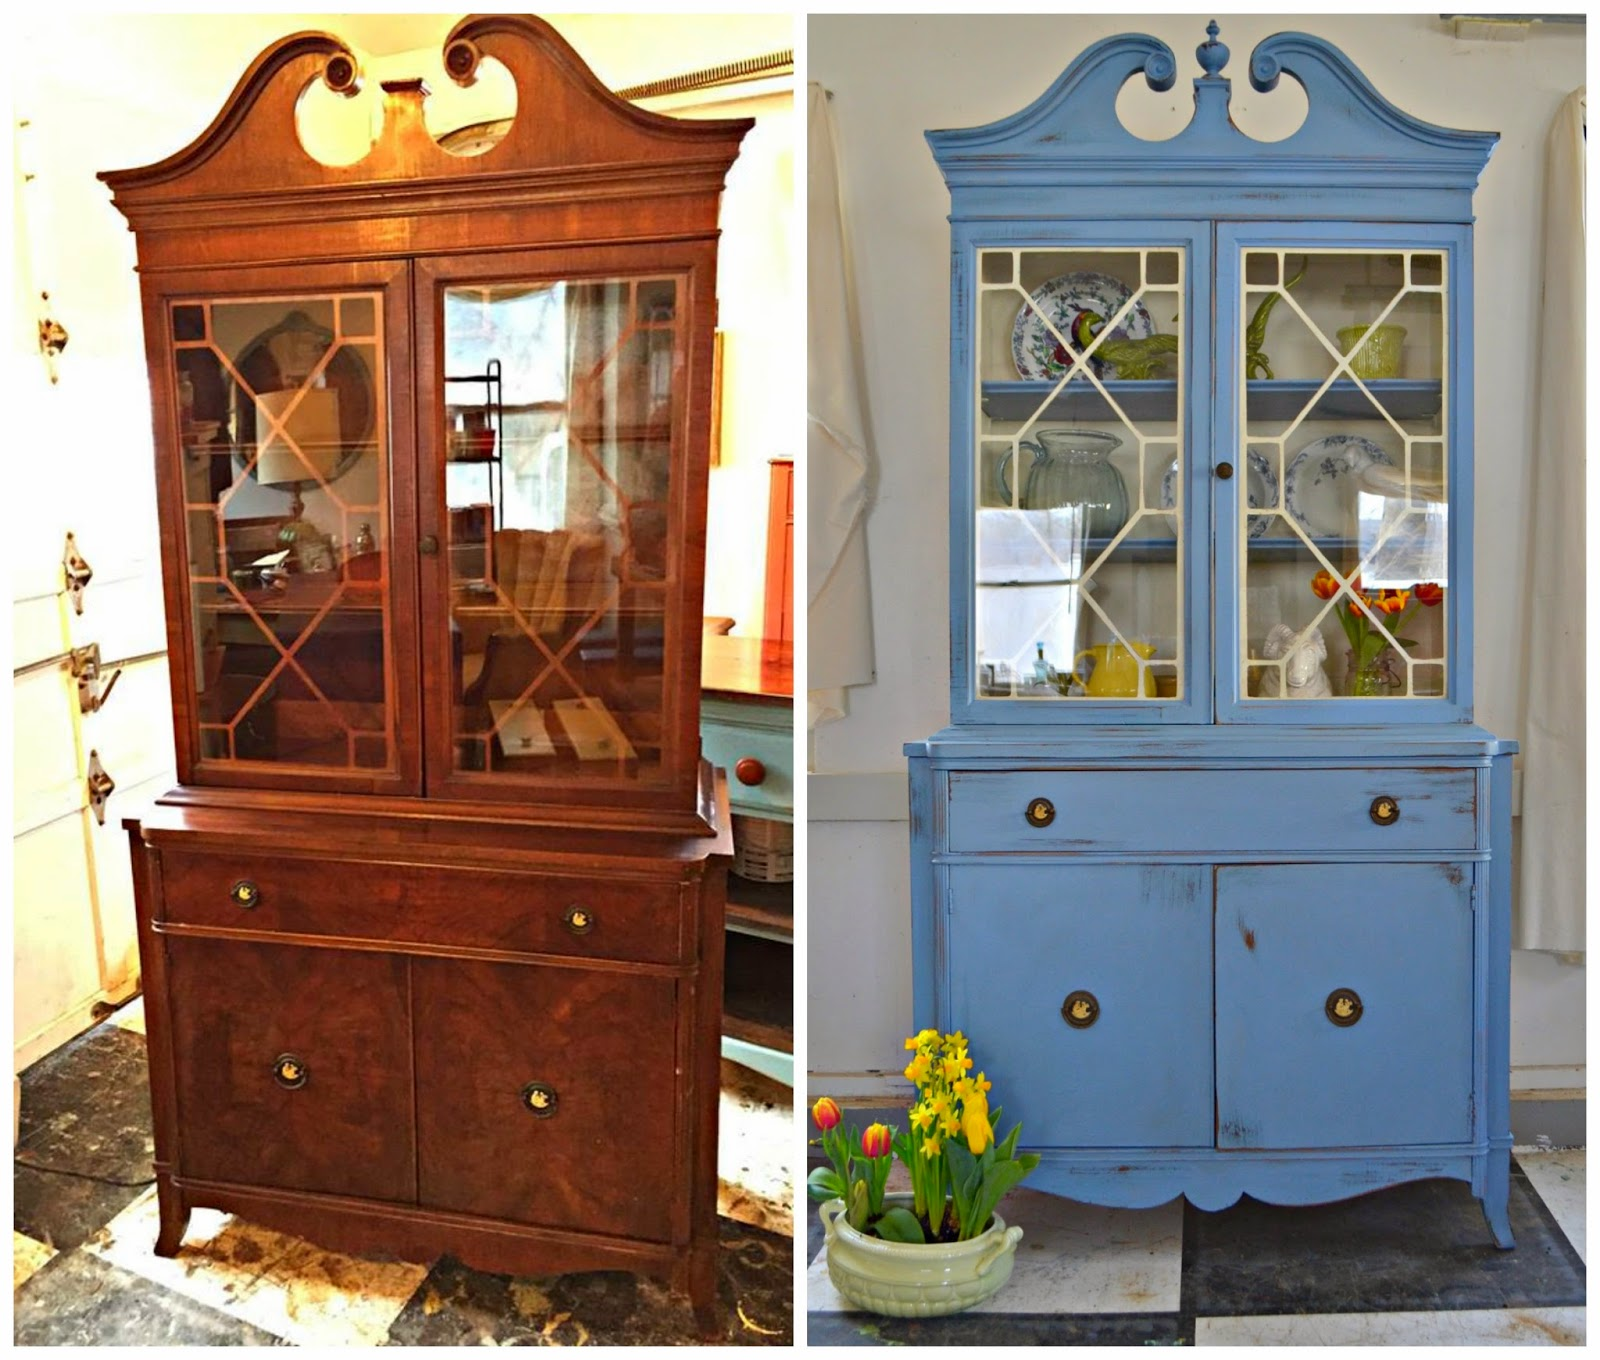 Heir and Space: An Antique China Hutch in Wedgwood Blue